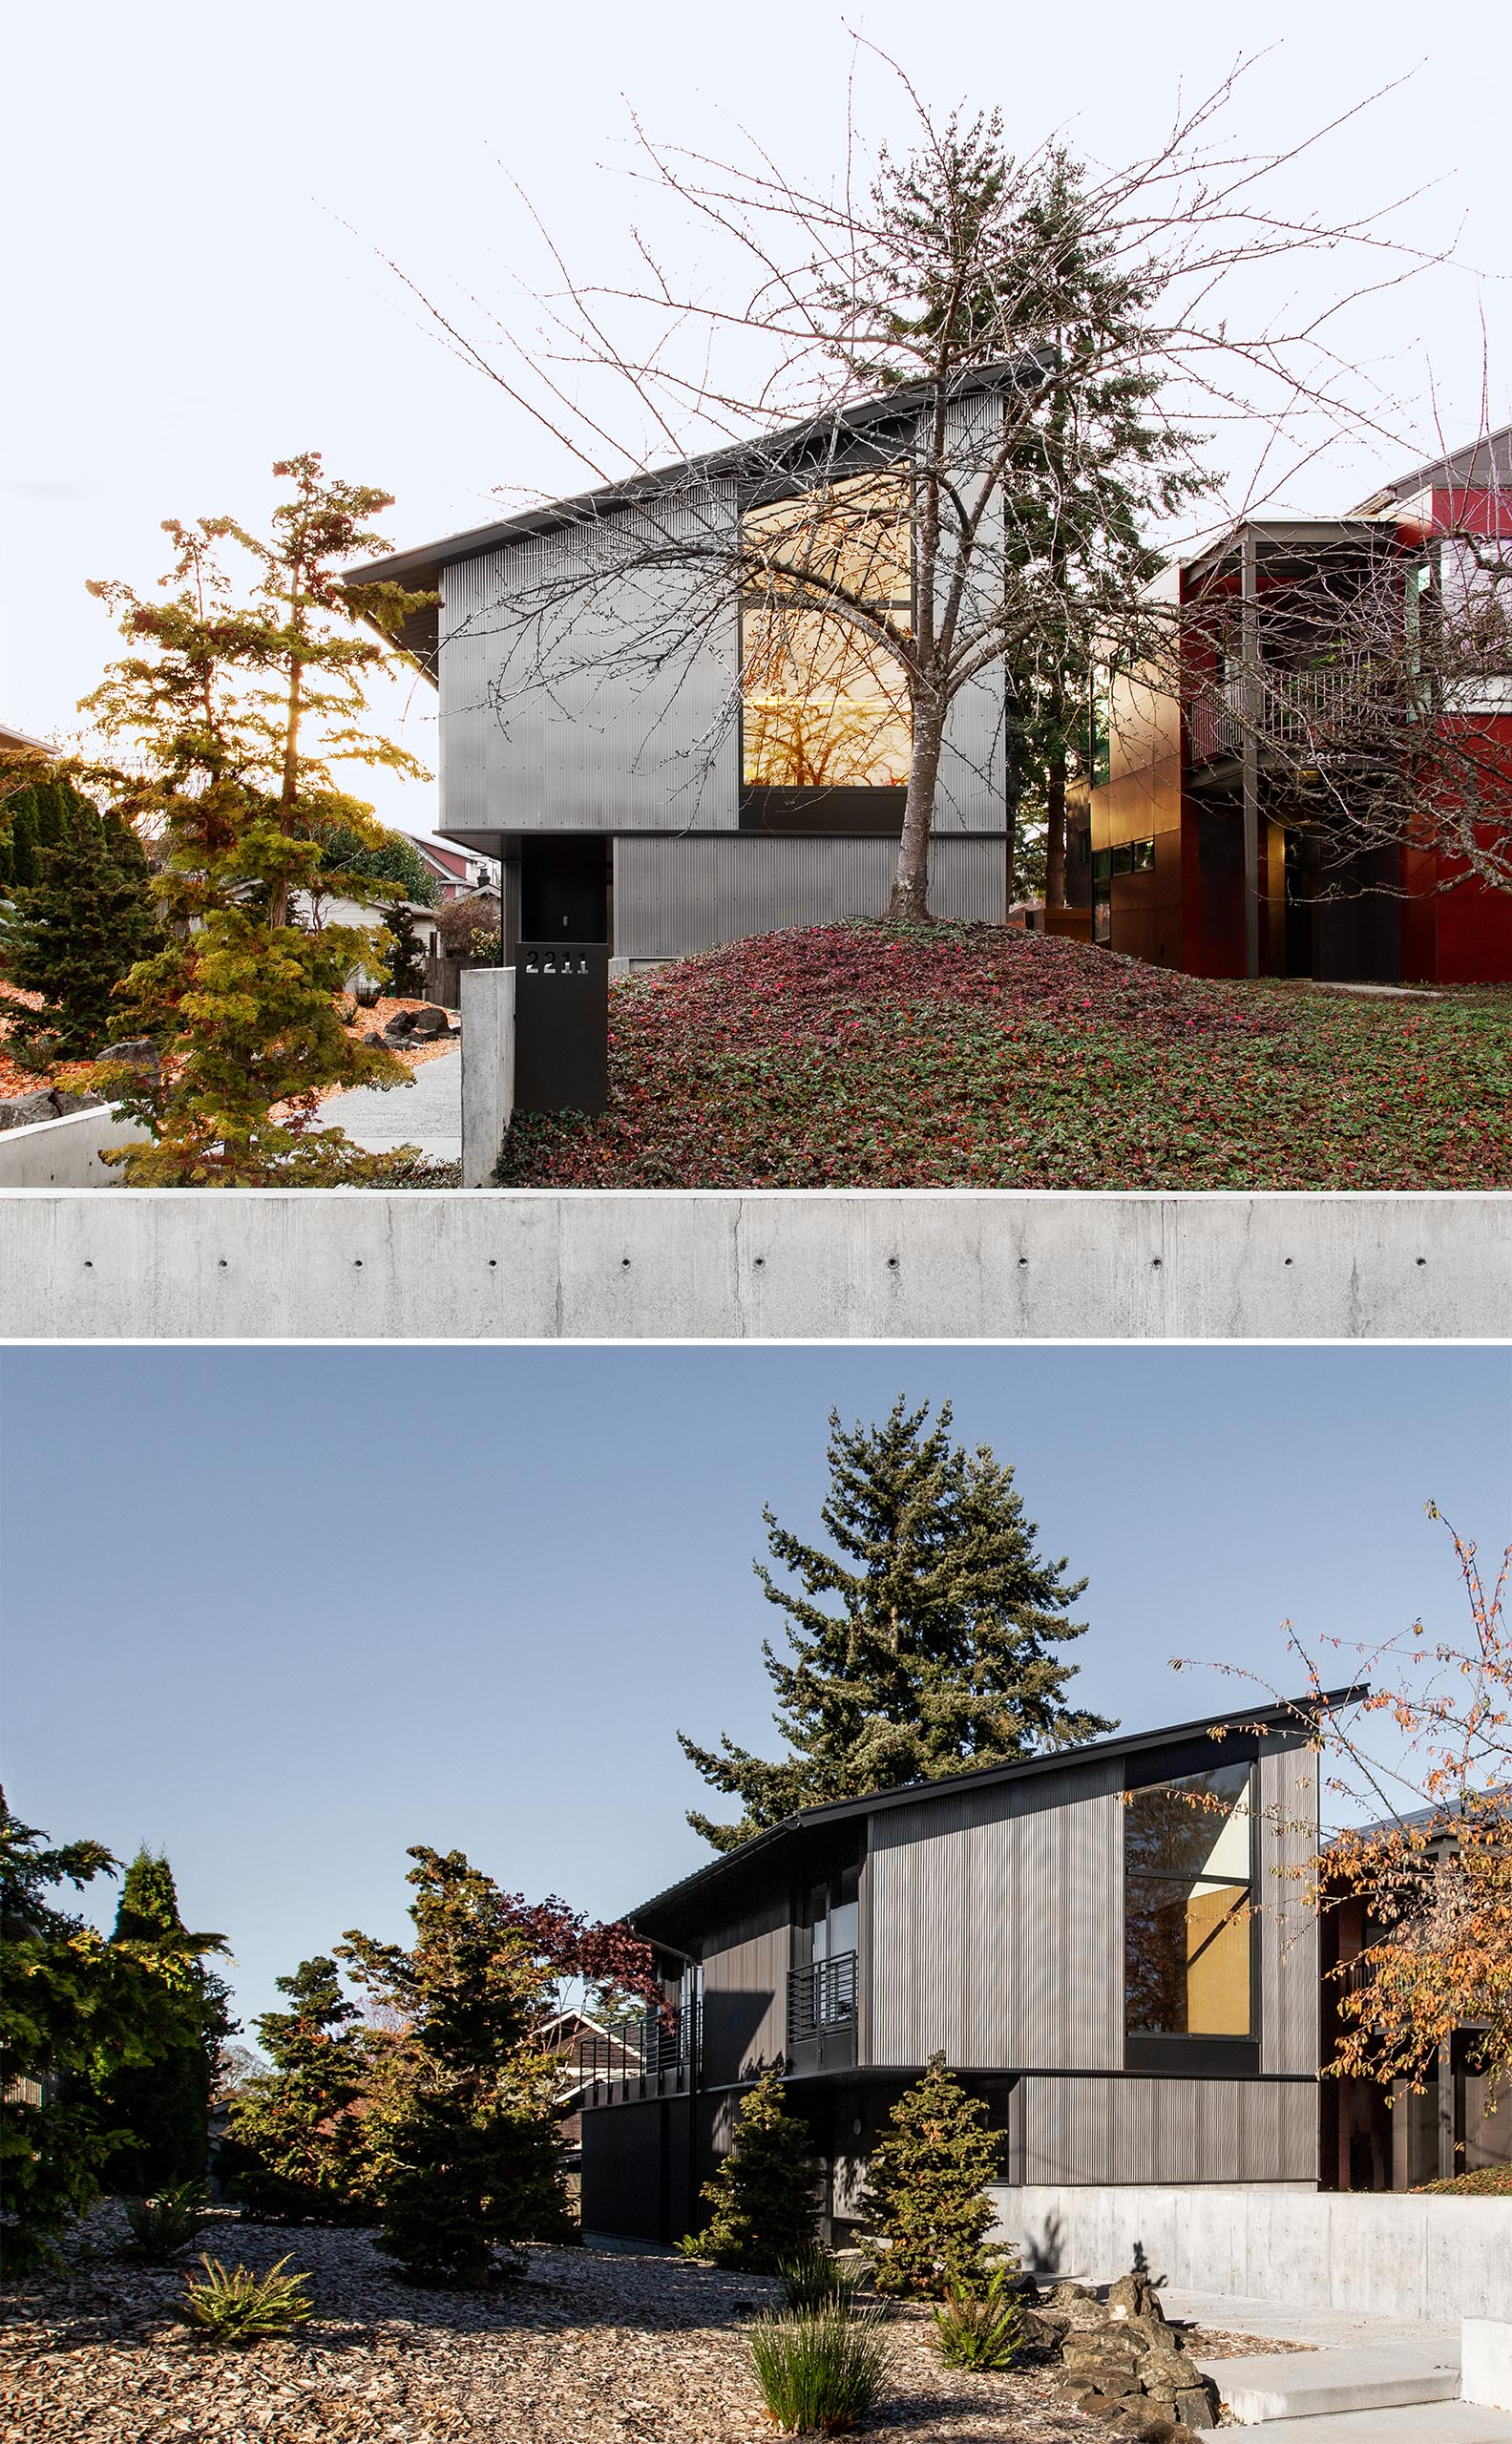 A modern house with corrugated metal siding, black accents, and a shed roof.